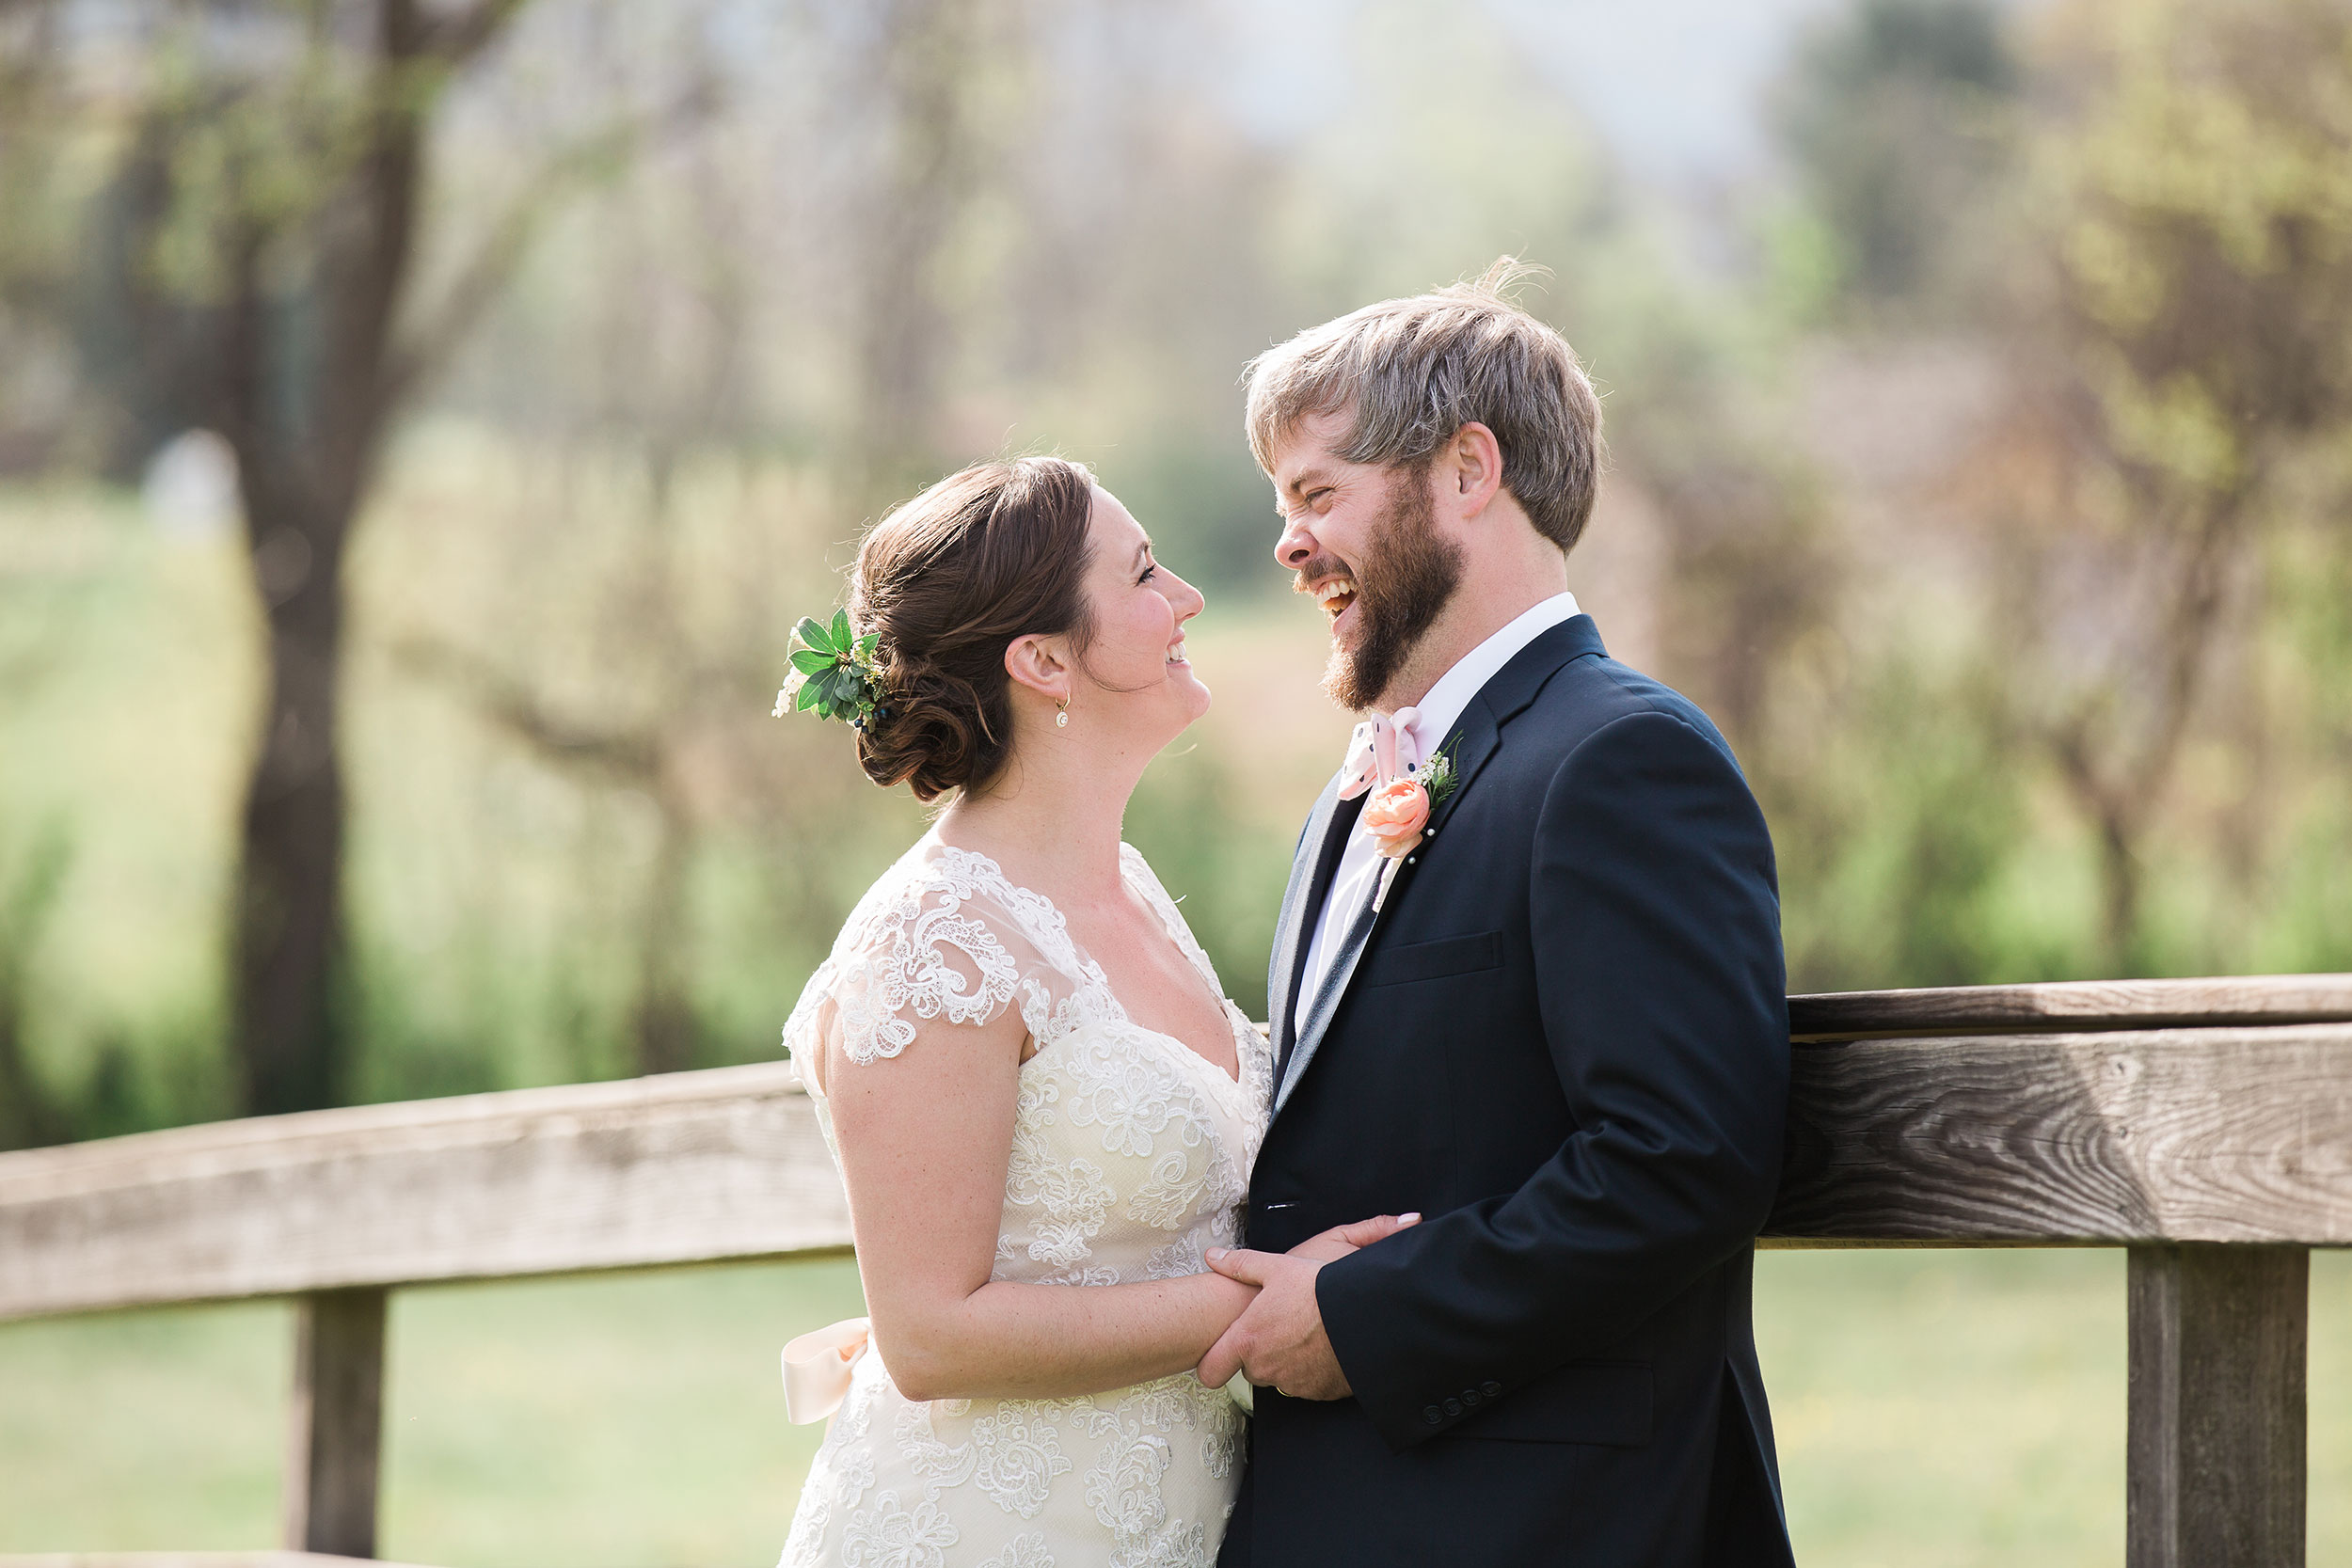 A Sophisticated Bluegrass & Craft Beer Mountain Wedding in Asheville